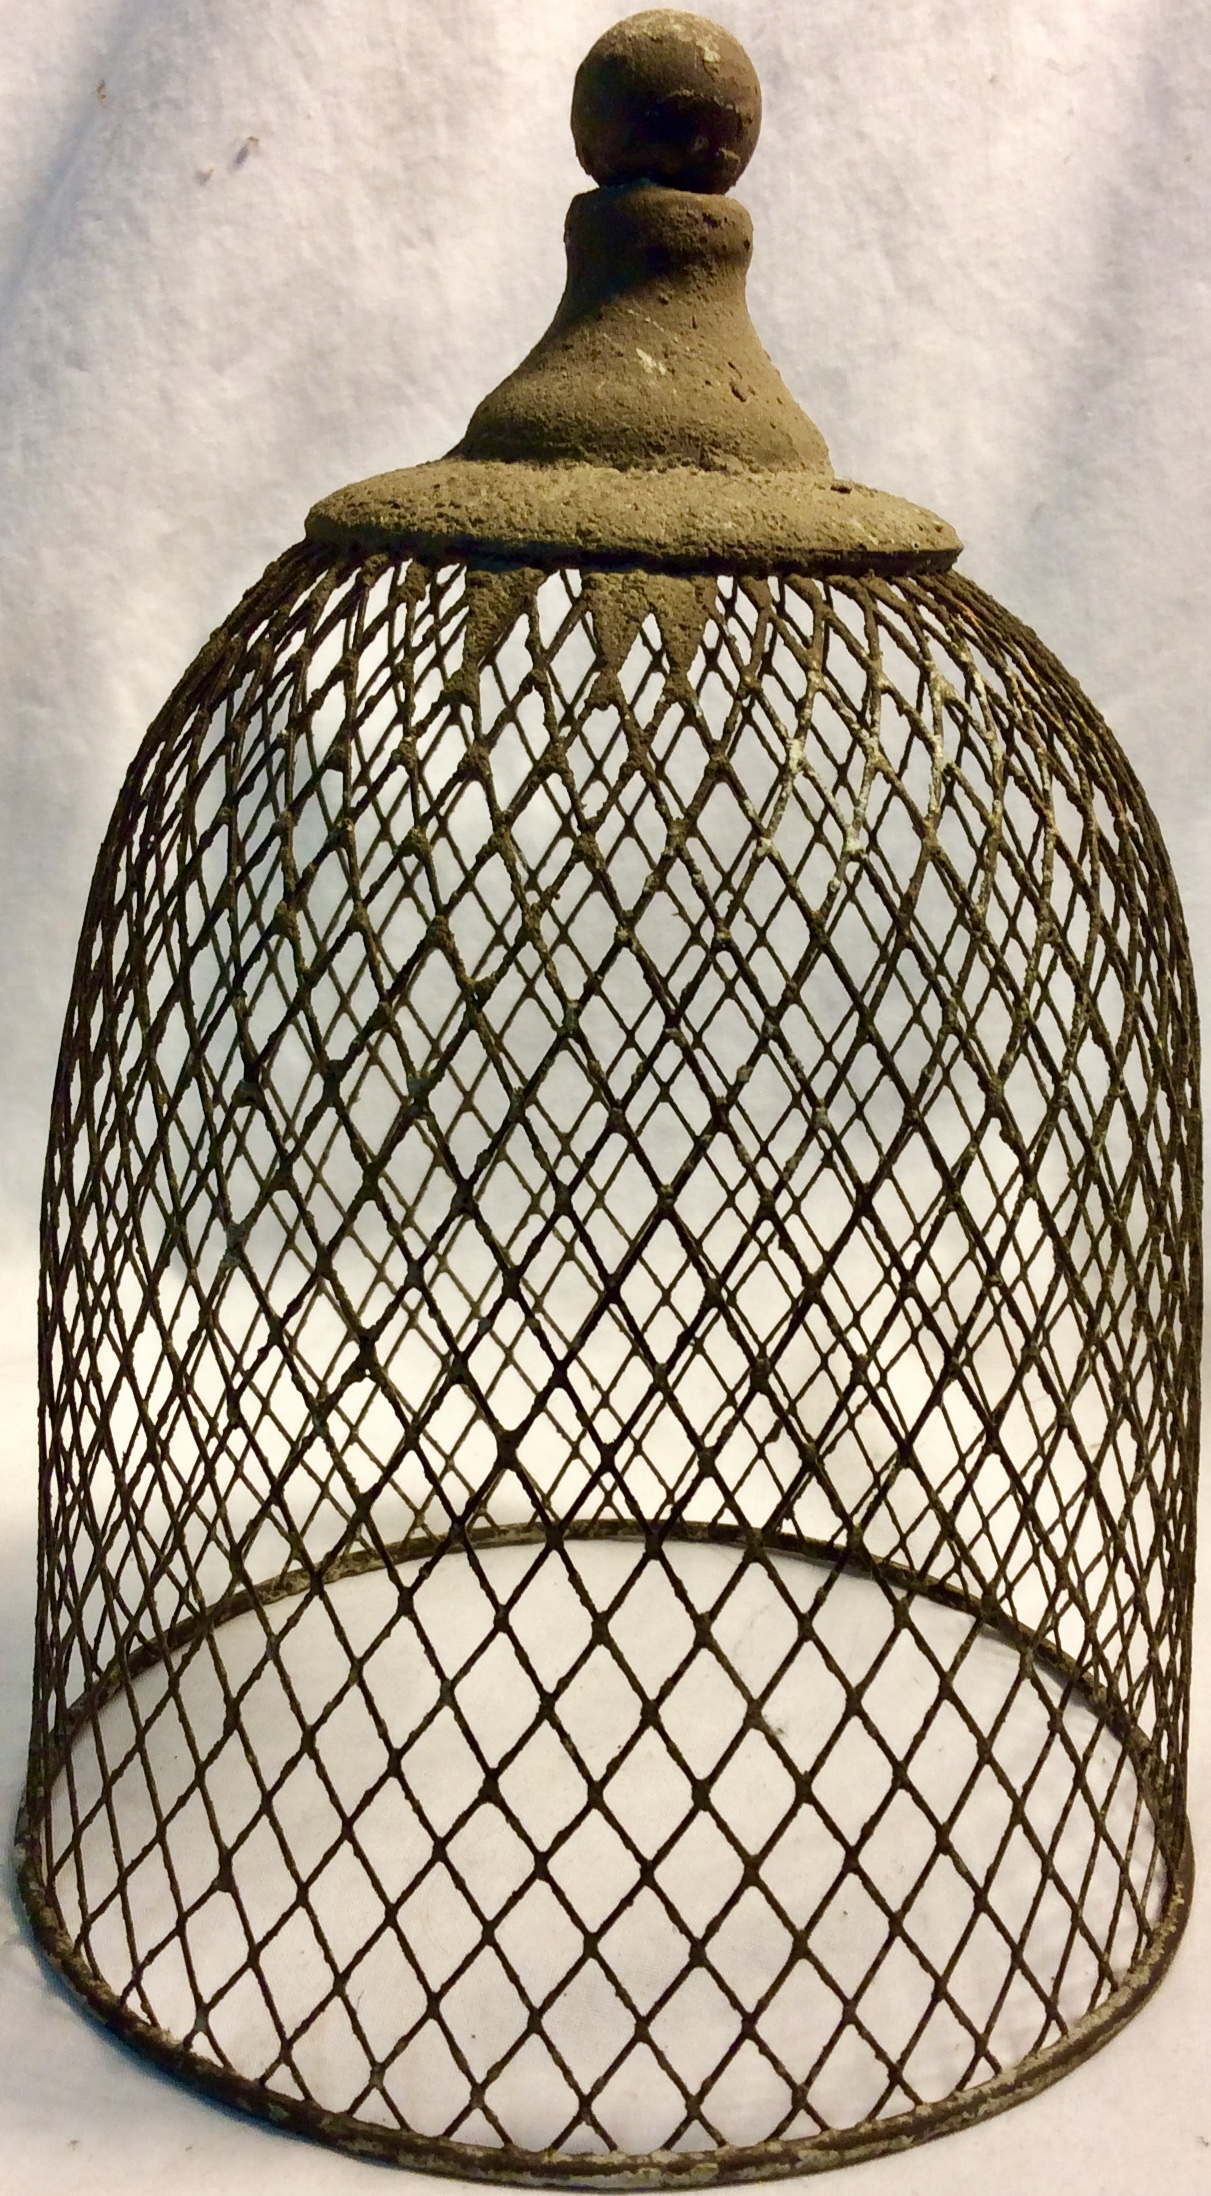 Portable bird cage, metal and concrete like material.